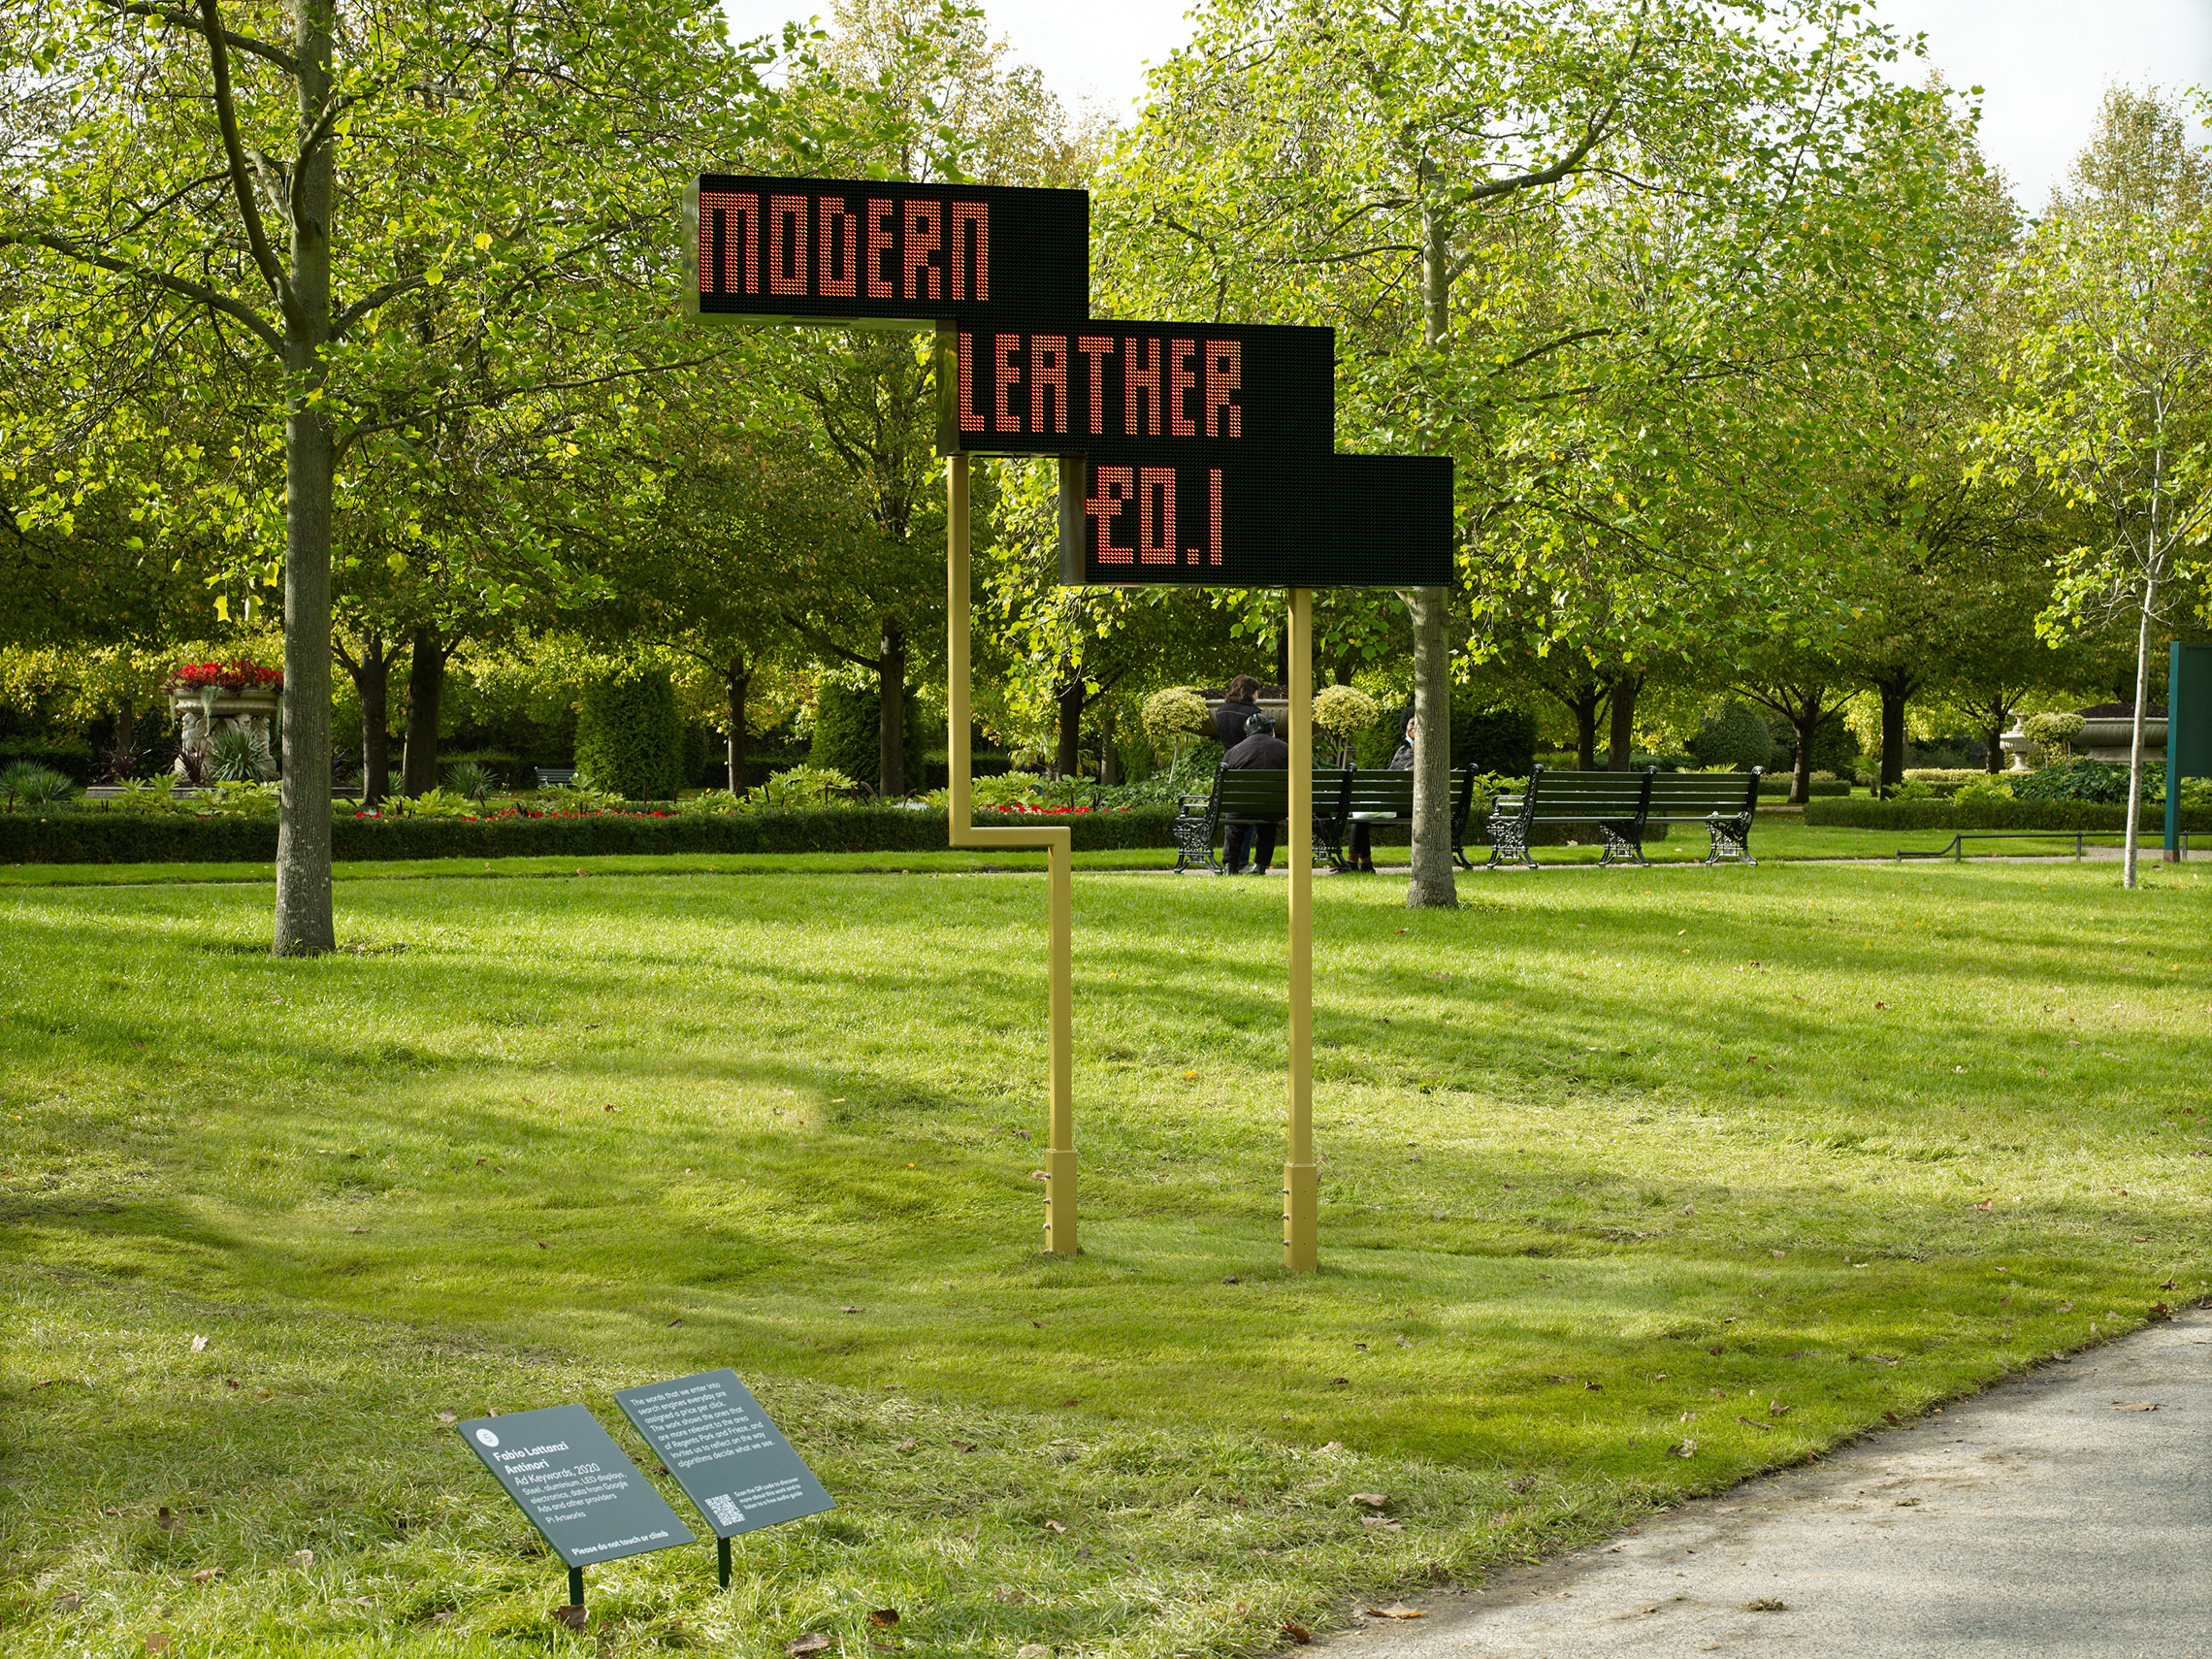 AdKeywords, by Fabio Lattanzi Antinori. Frieze Sculpture Park 2020 with Pi Artworks. Photo: Frieze;